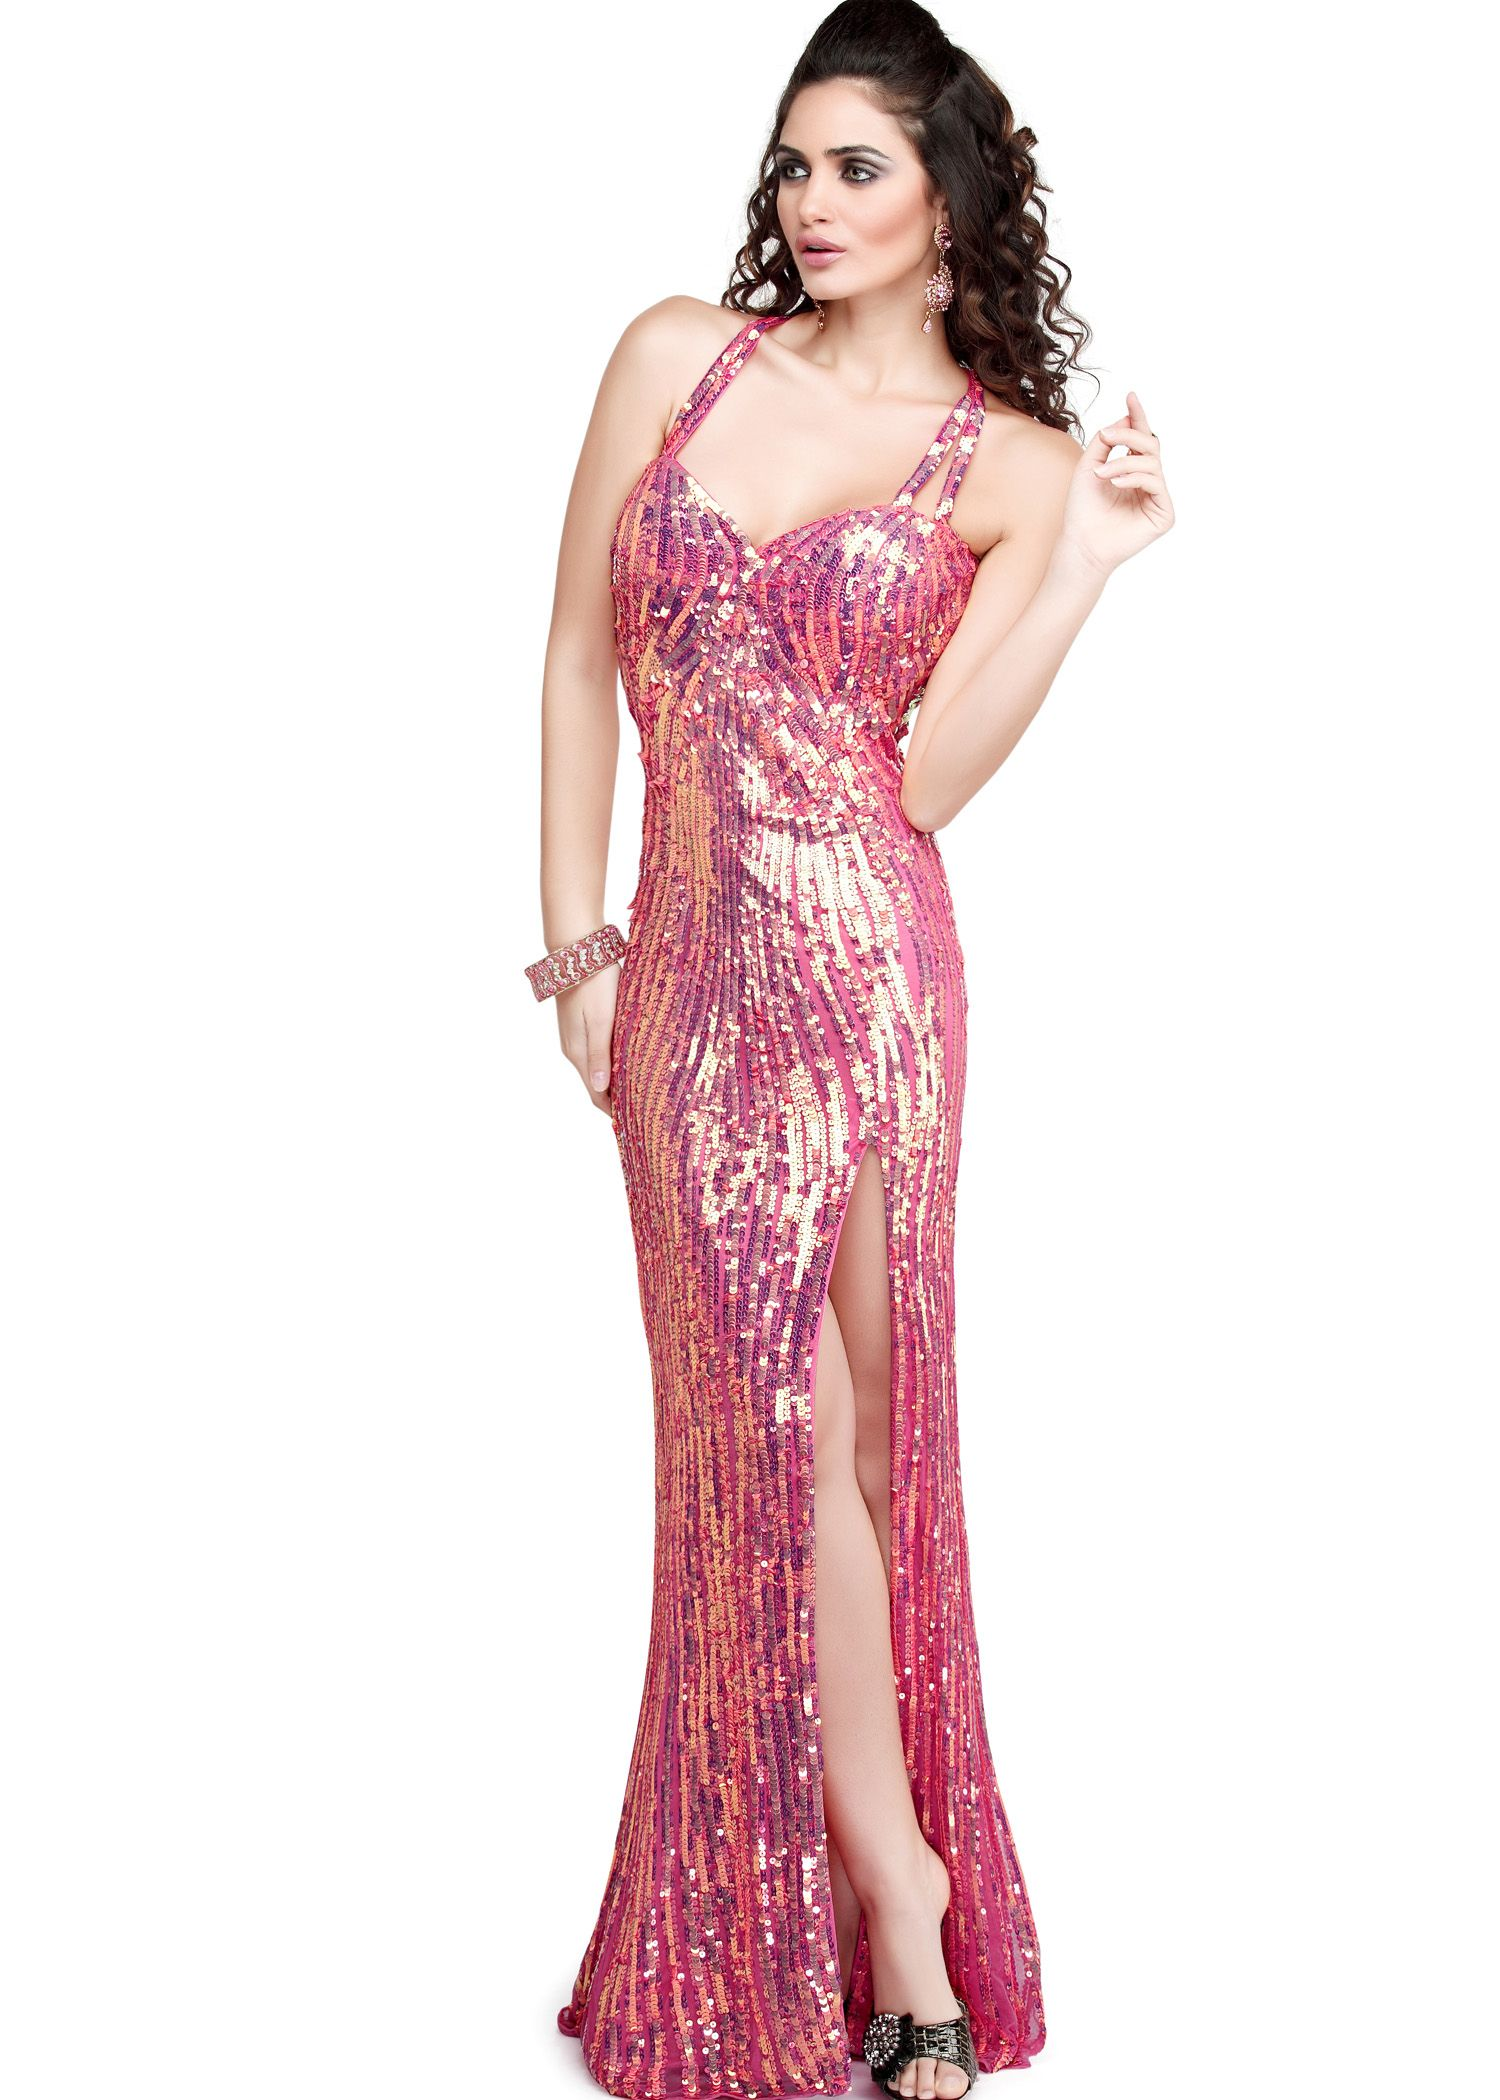 Free shipping on primavera coral sequin open back prom dresses